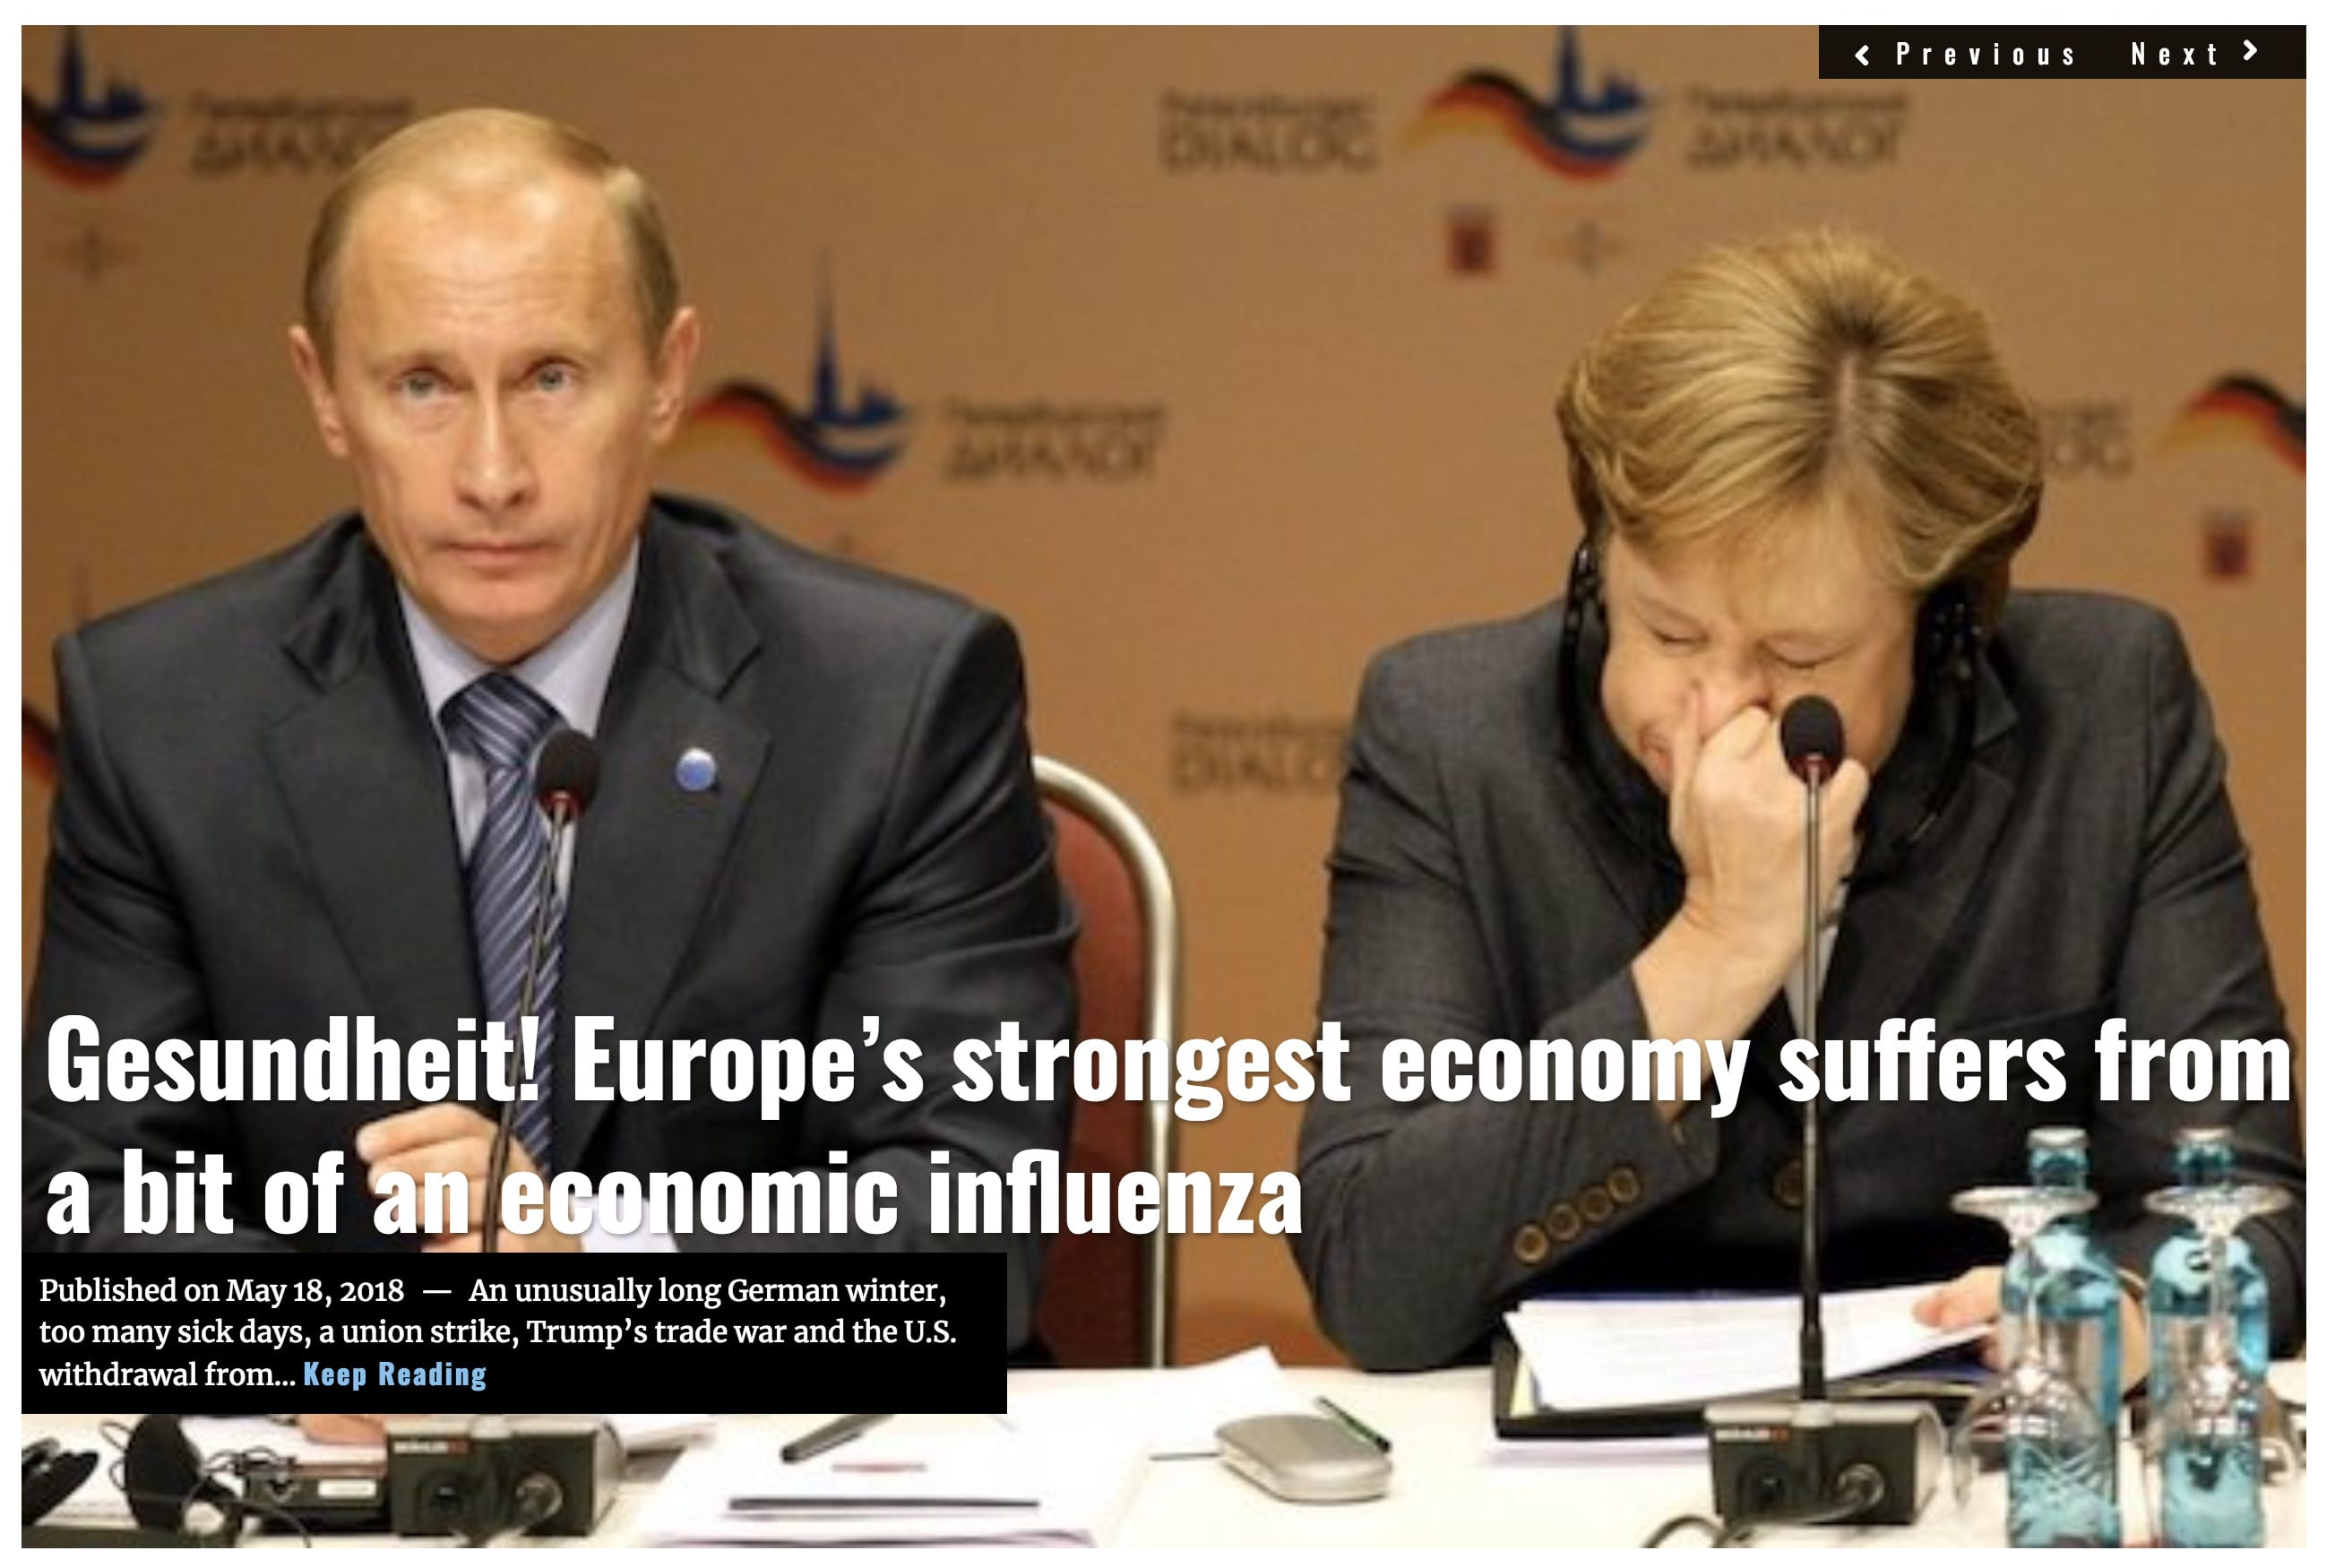 Image Lima Charlie News Headline Gesundheit! Europe's strongest economy suffers from a bit of an economic influenza MAY 18 2018